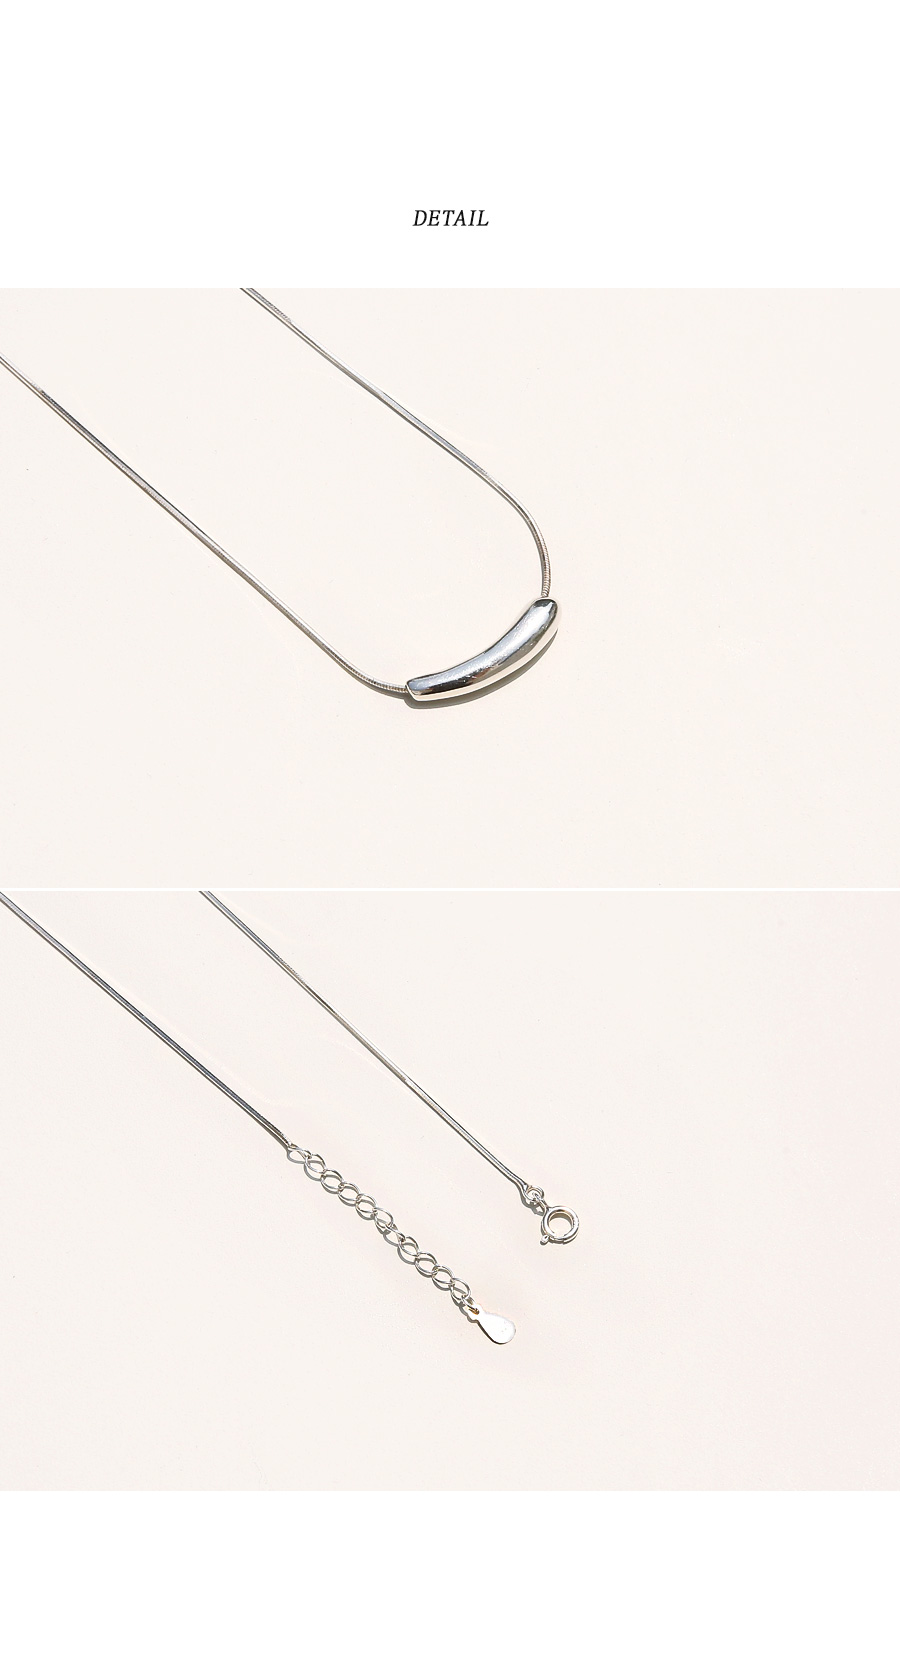 UNBAL BAR 92.5 SILVER NECKLACE